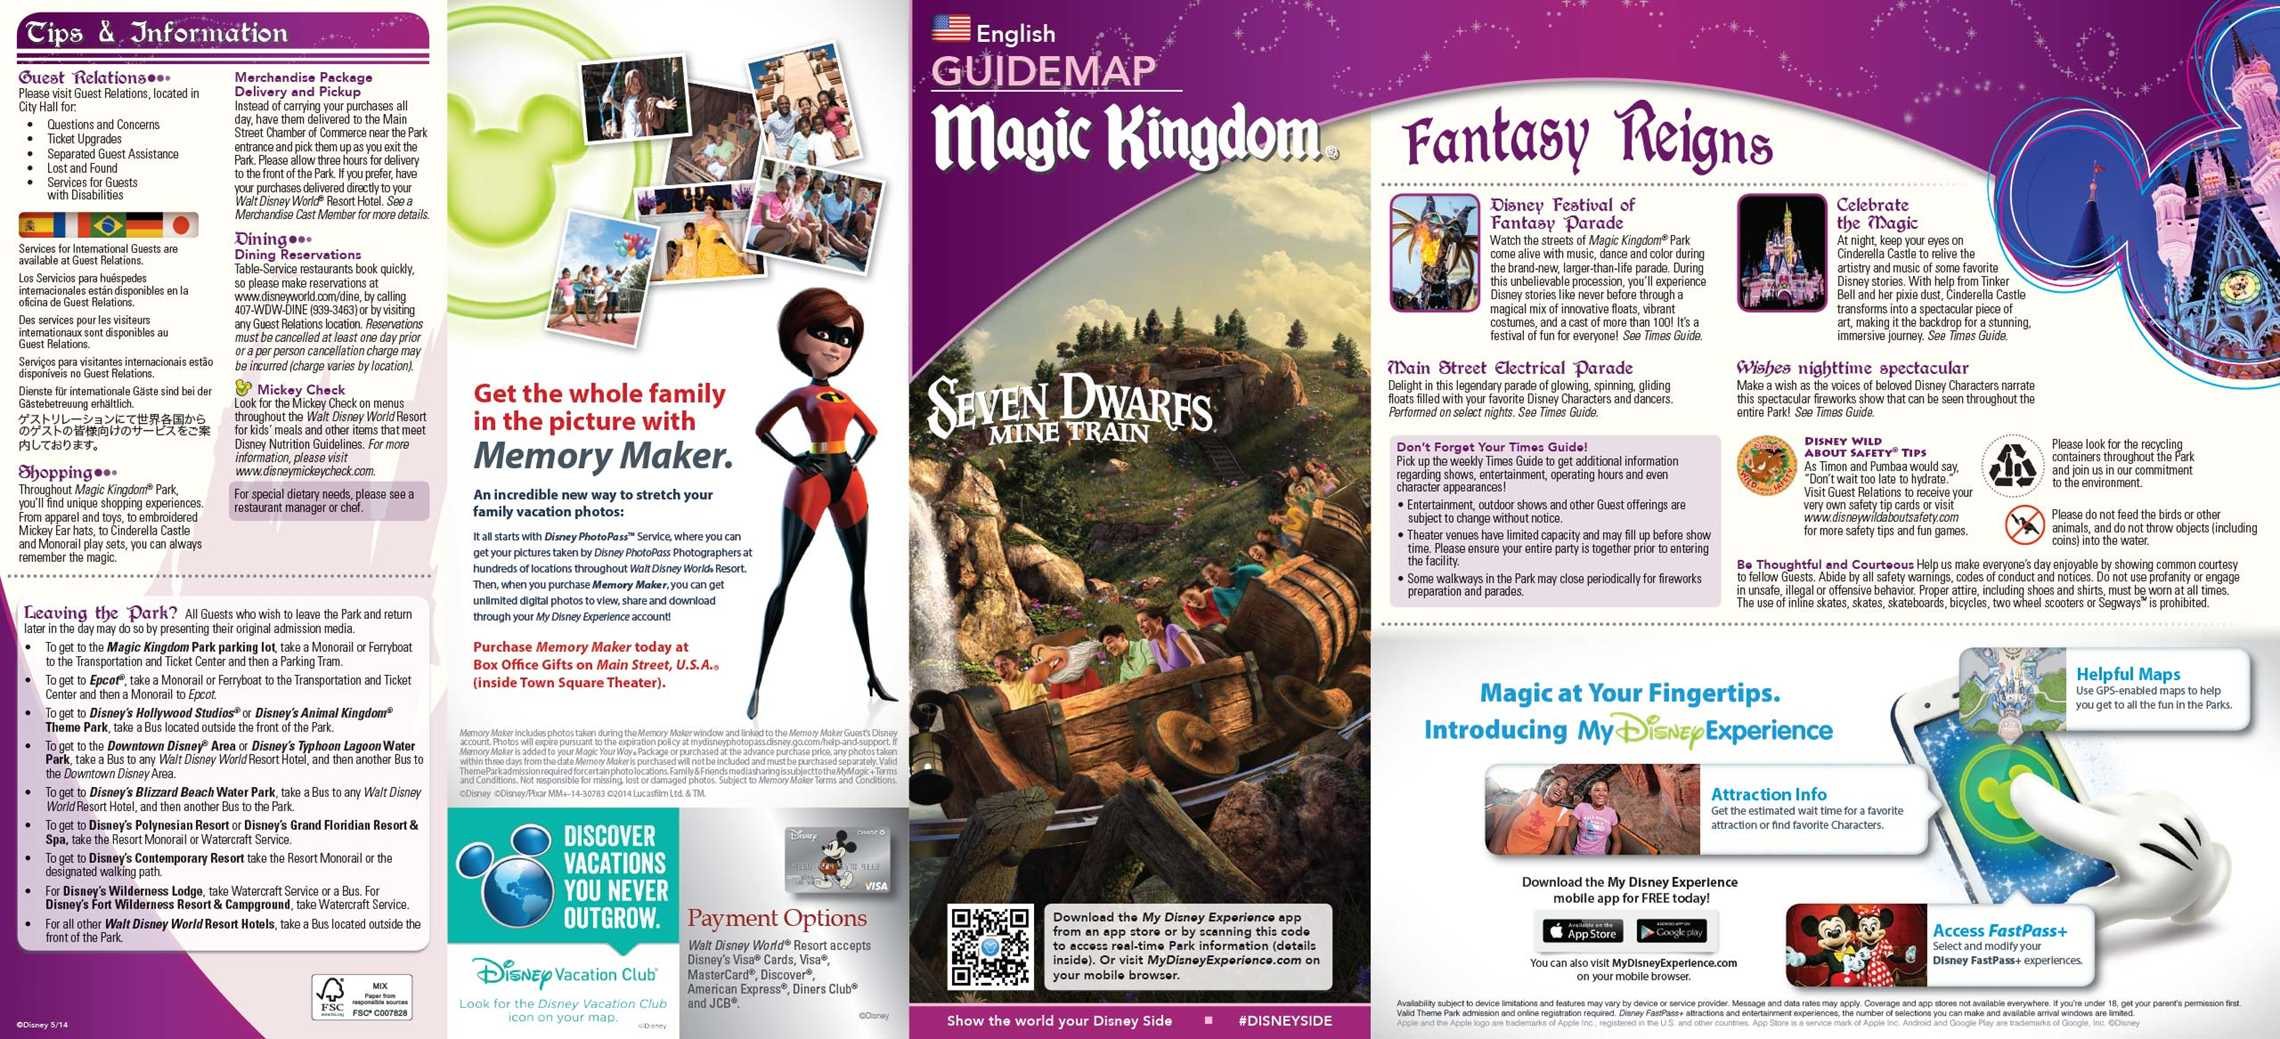 New Magic Kingdom guide map featuring Seven Dwarfs Mine Train - front cover